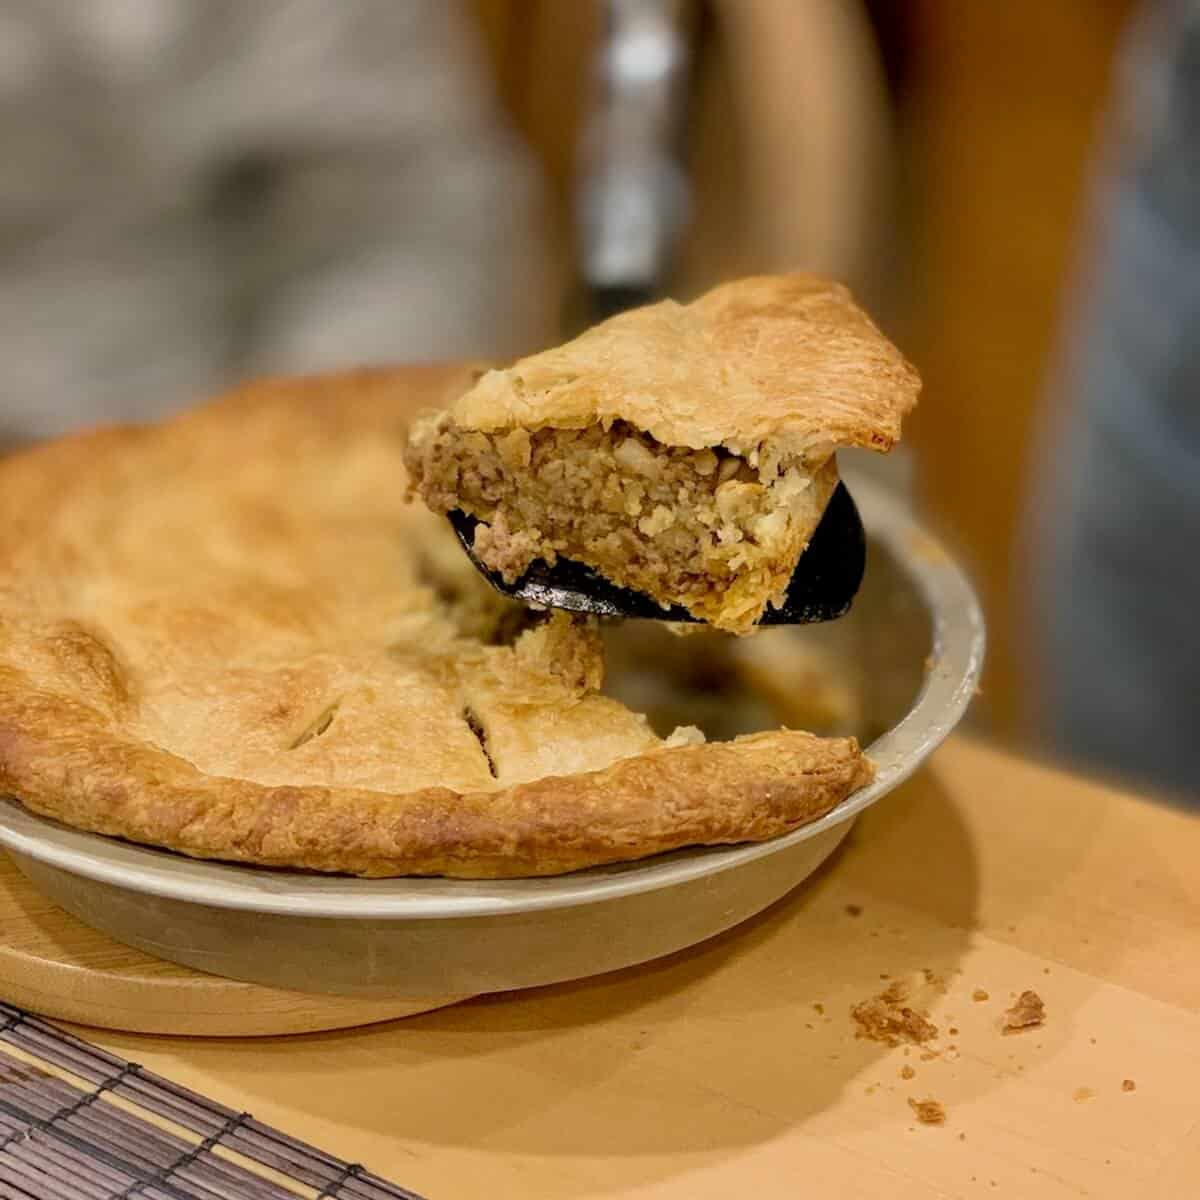 Morrocan Beef Pie slice lifted from pan